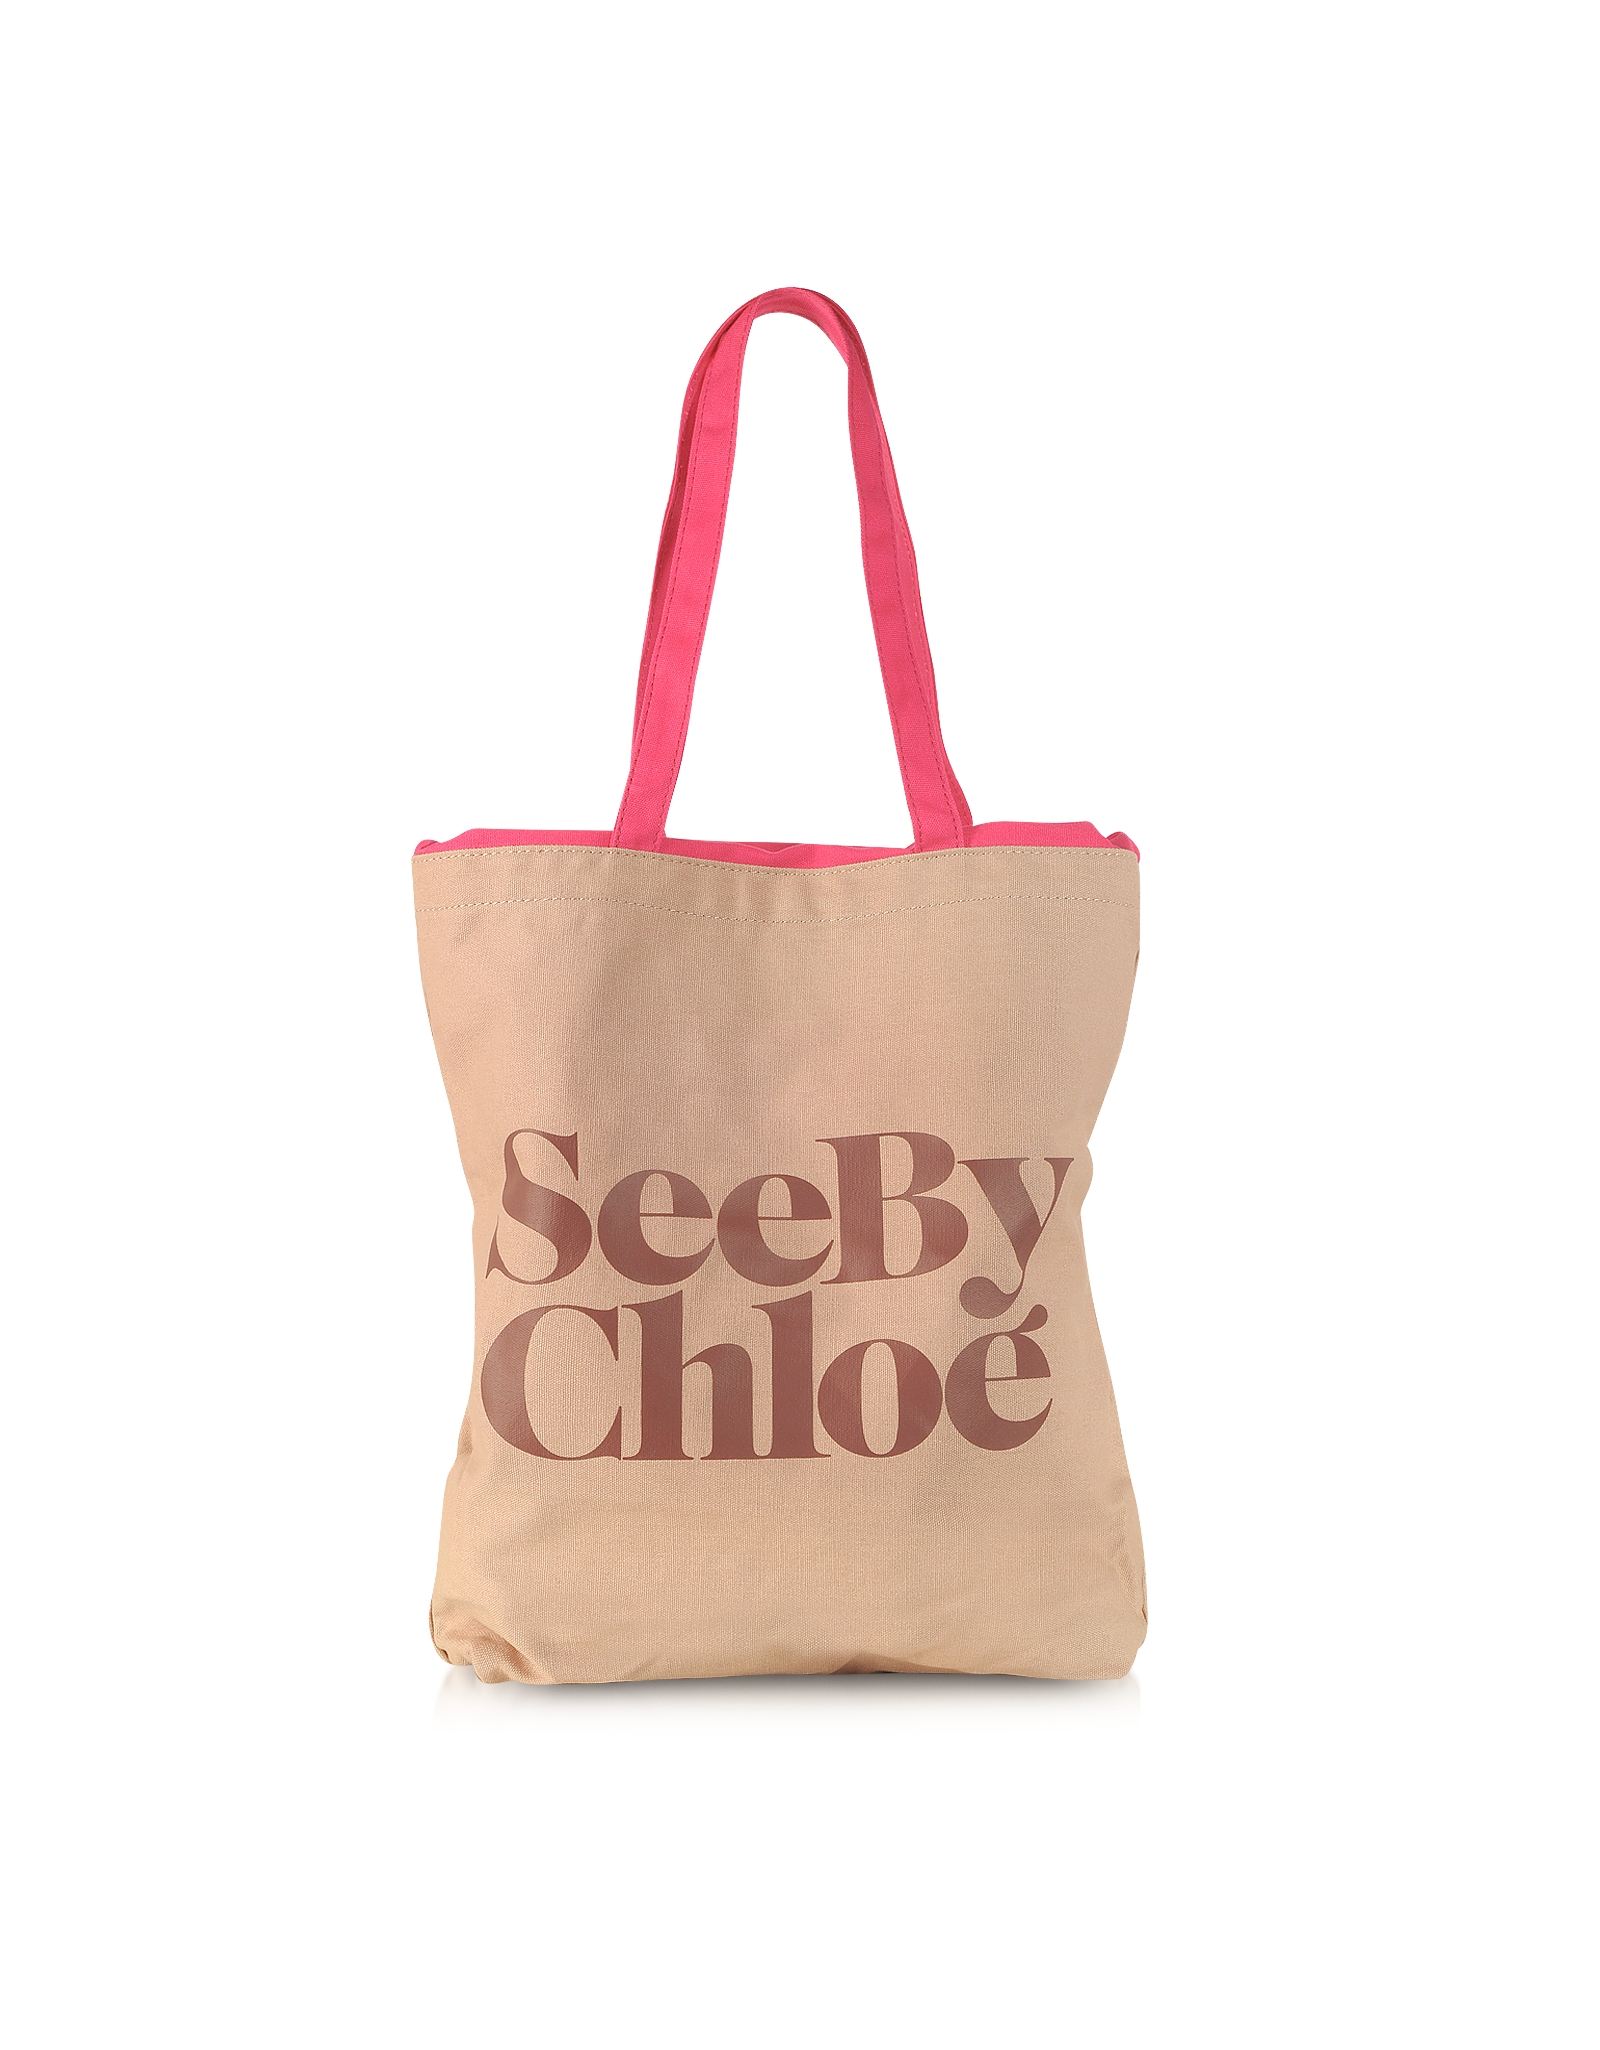 Chlo¨¦ Signature Canvas Tote Bag in Beige (Nougat) | Lyst